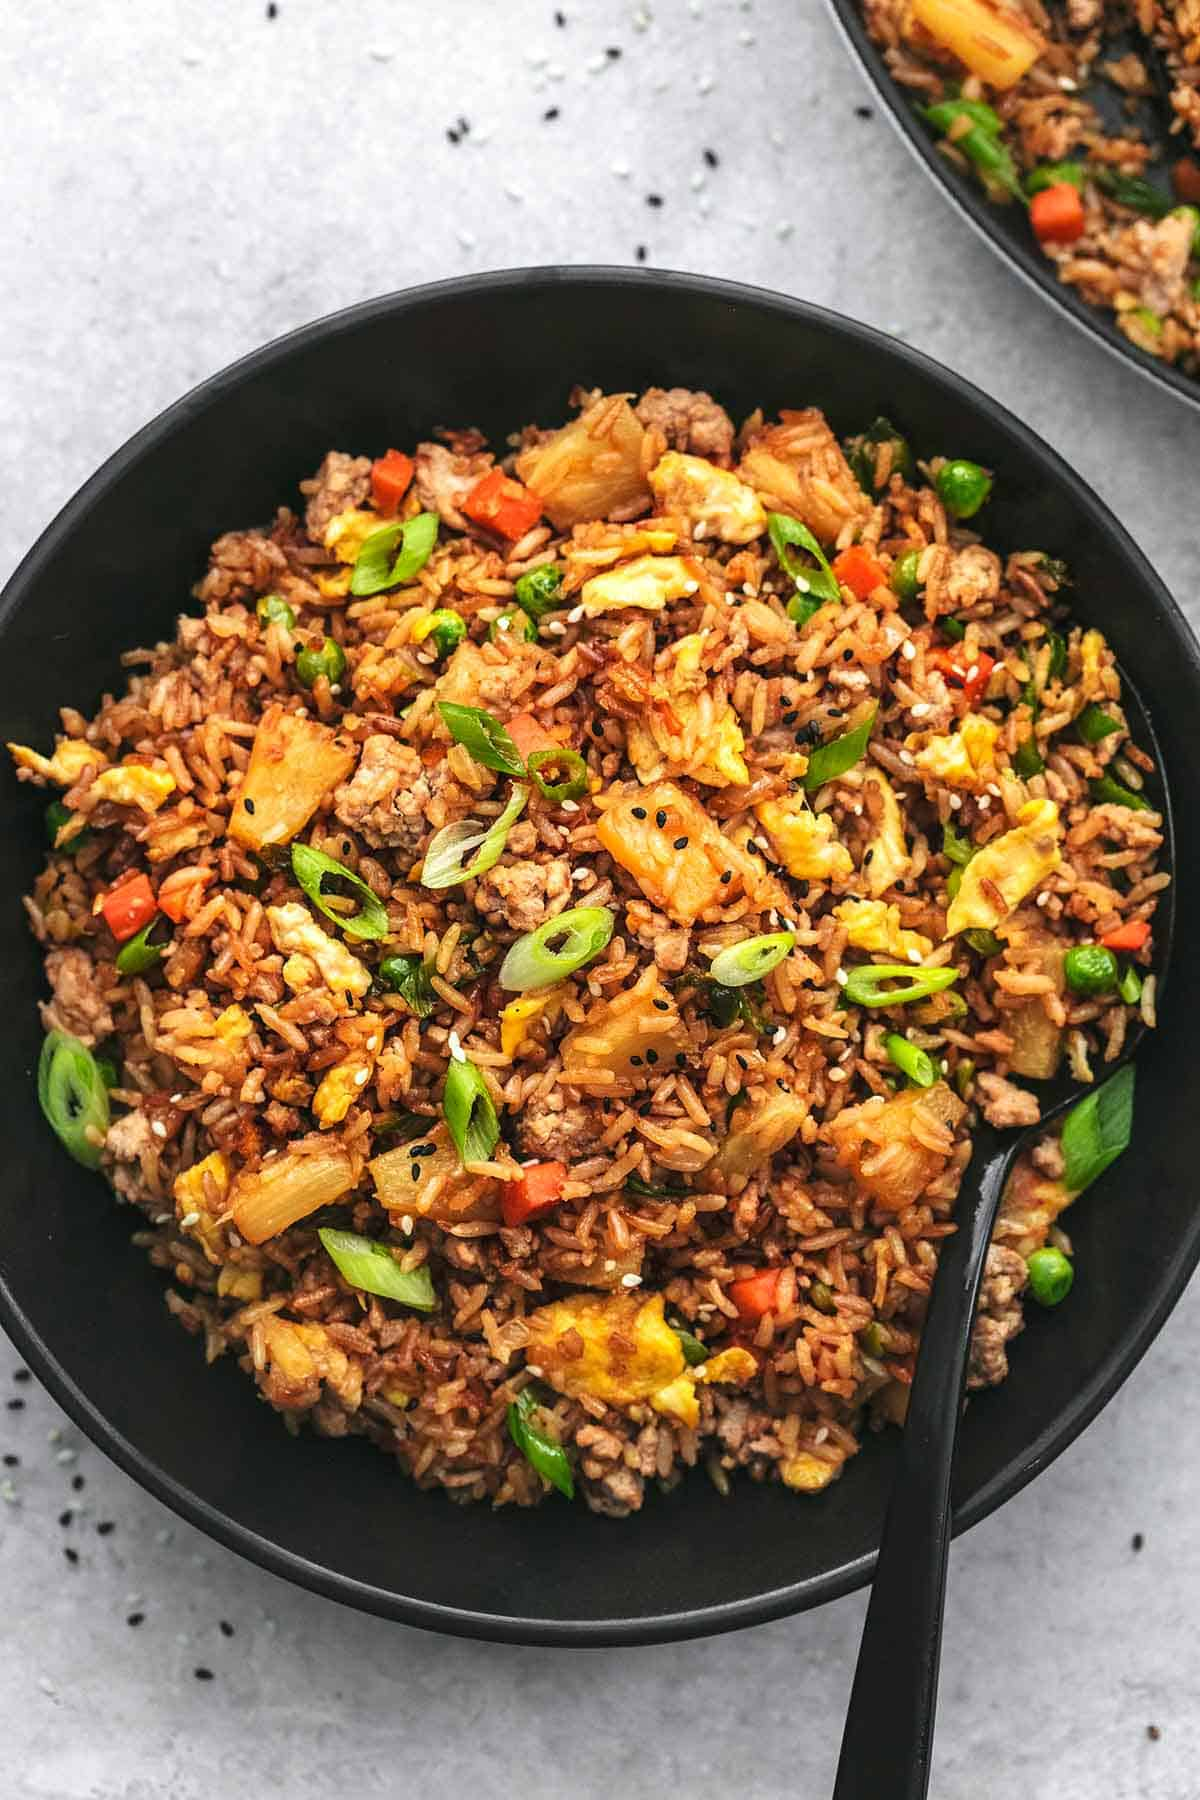 overhead view of rice and veggies with pineapple and pork in black dish